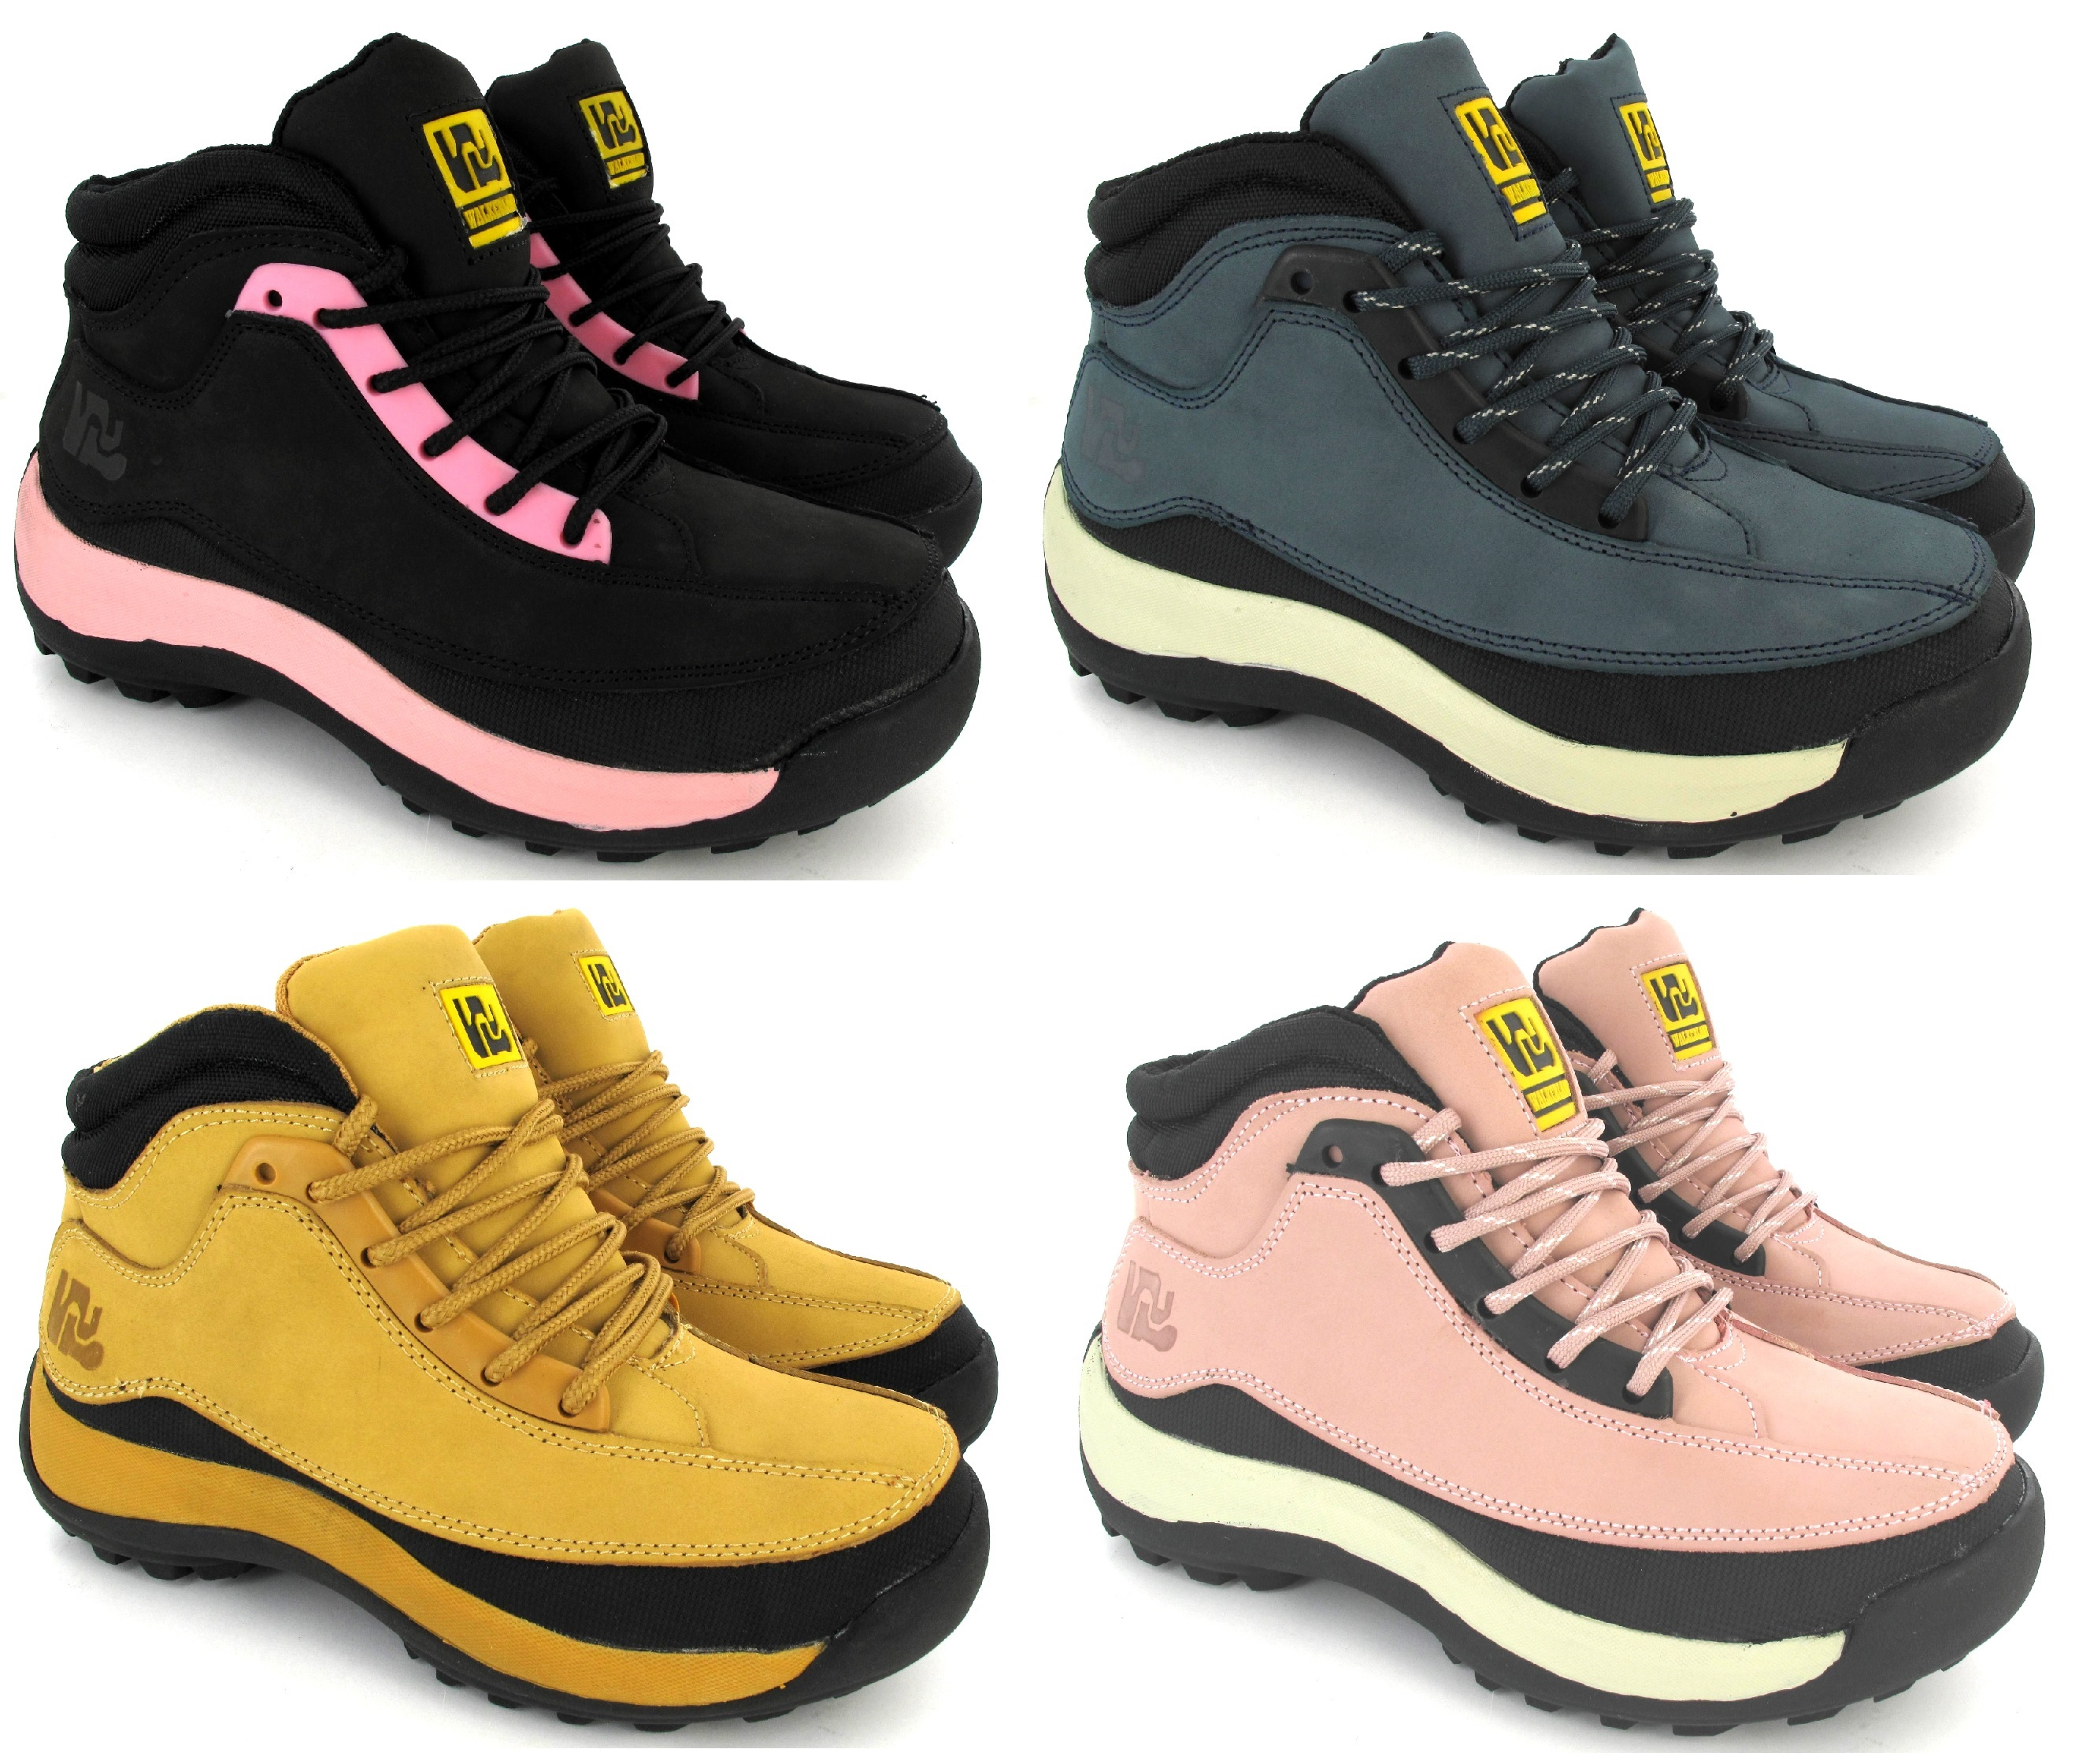 Ladies safety womens leather steel toe caps hiking ankle - Calzado de seguridad ...